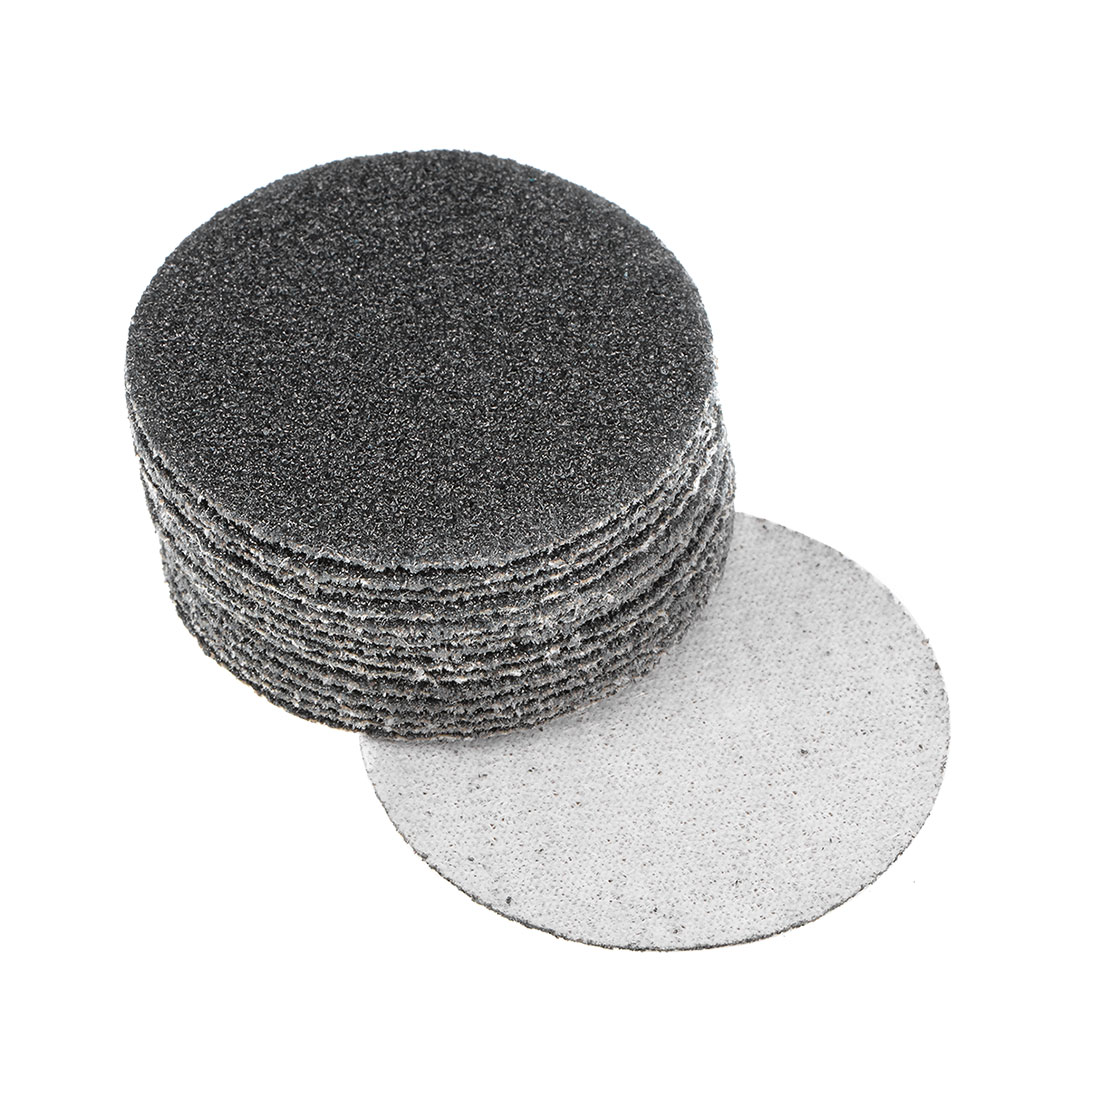 2 inch Wet Dry Discs 60 Grit Hook and Loop Sanding Disc Silicon Carbide 15pcs